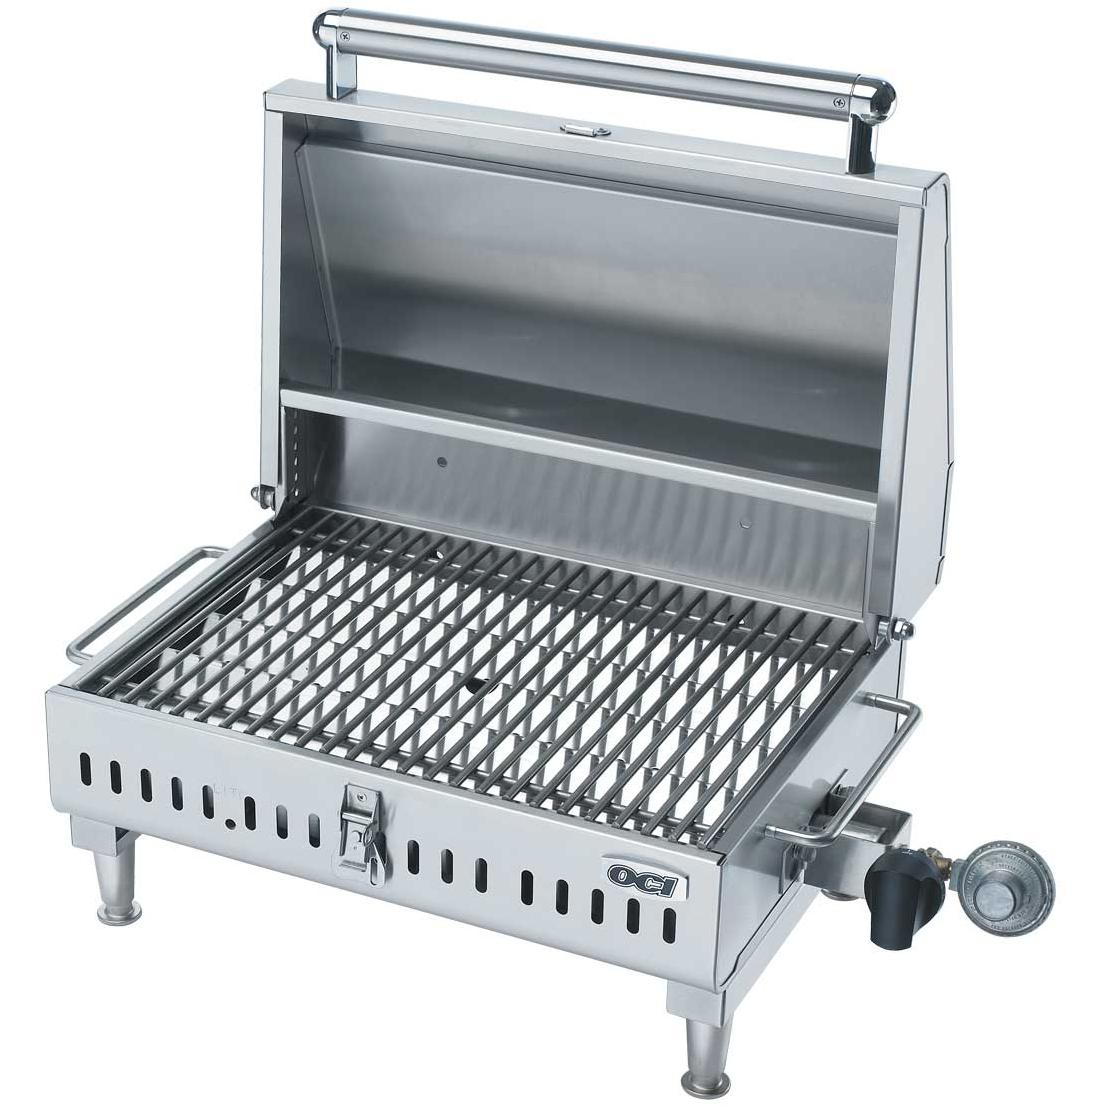 OCI Gas Grills Tabletop Travel Gas Grill   Propane